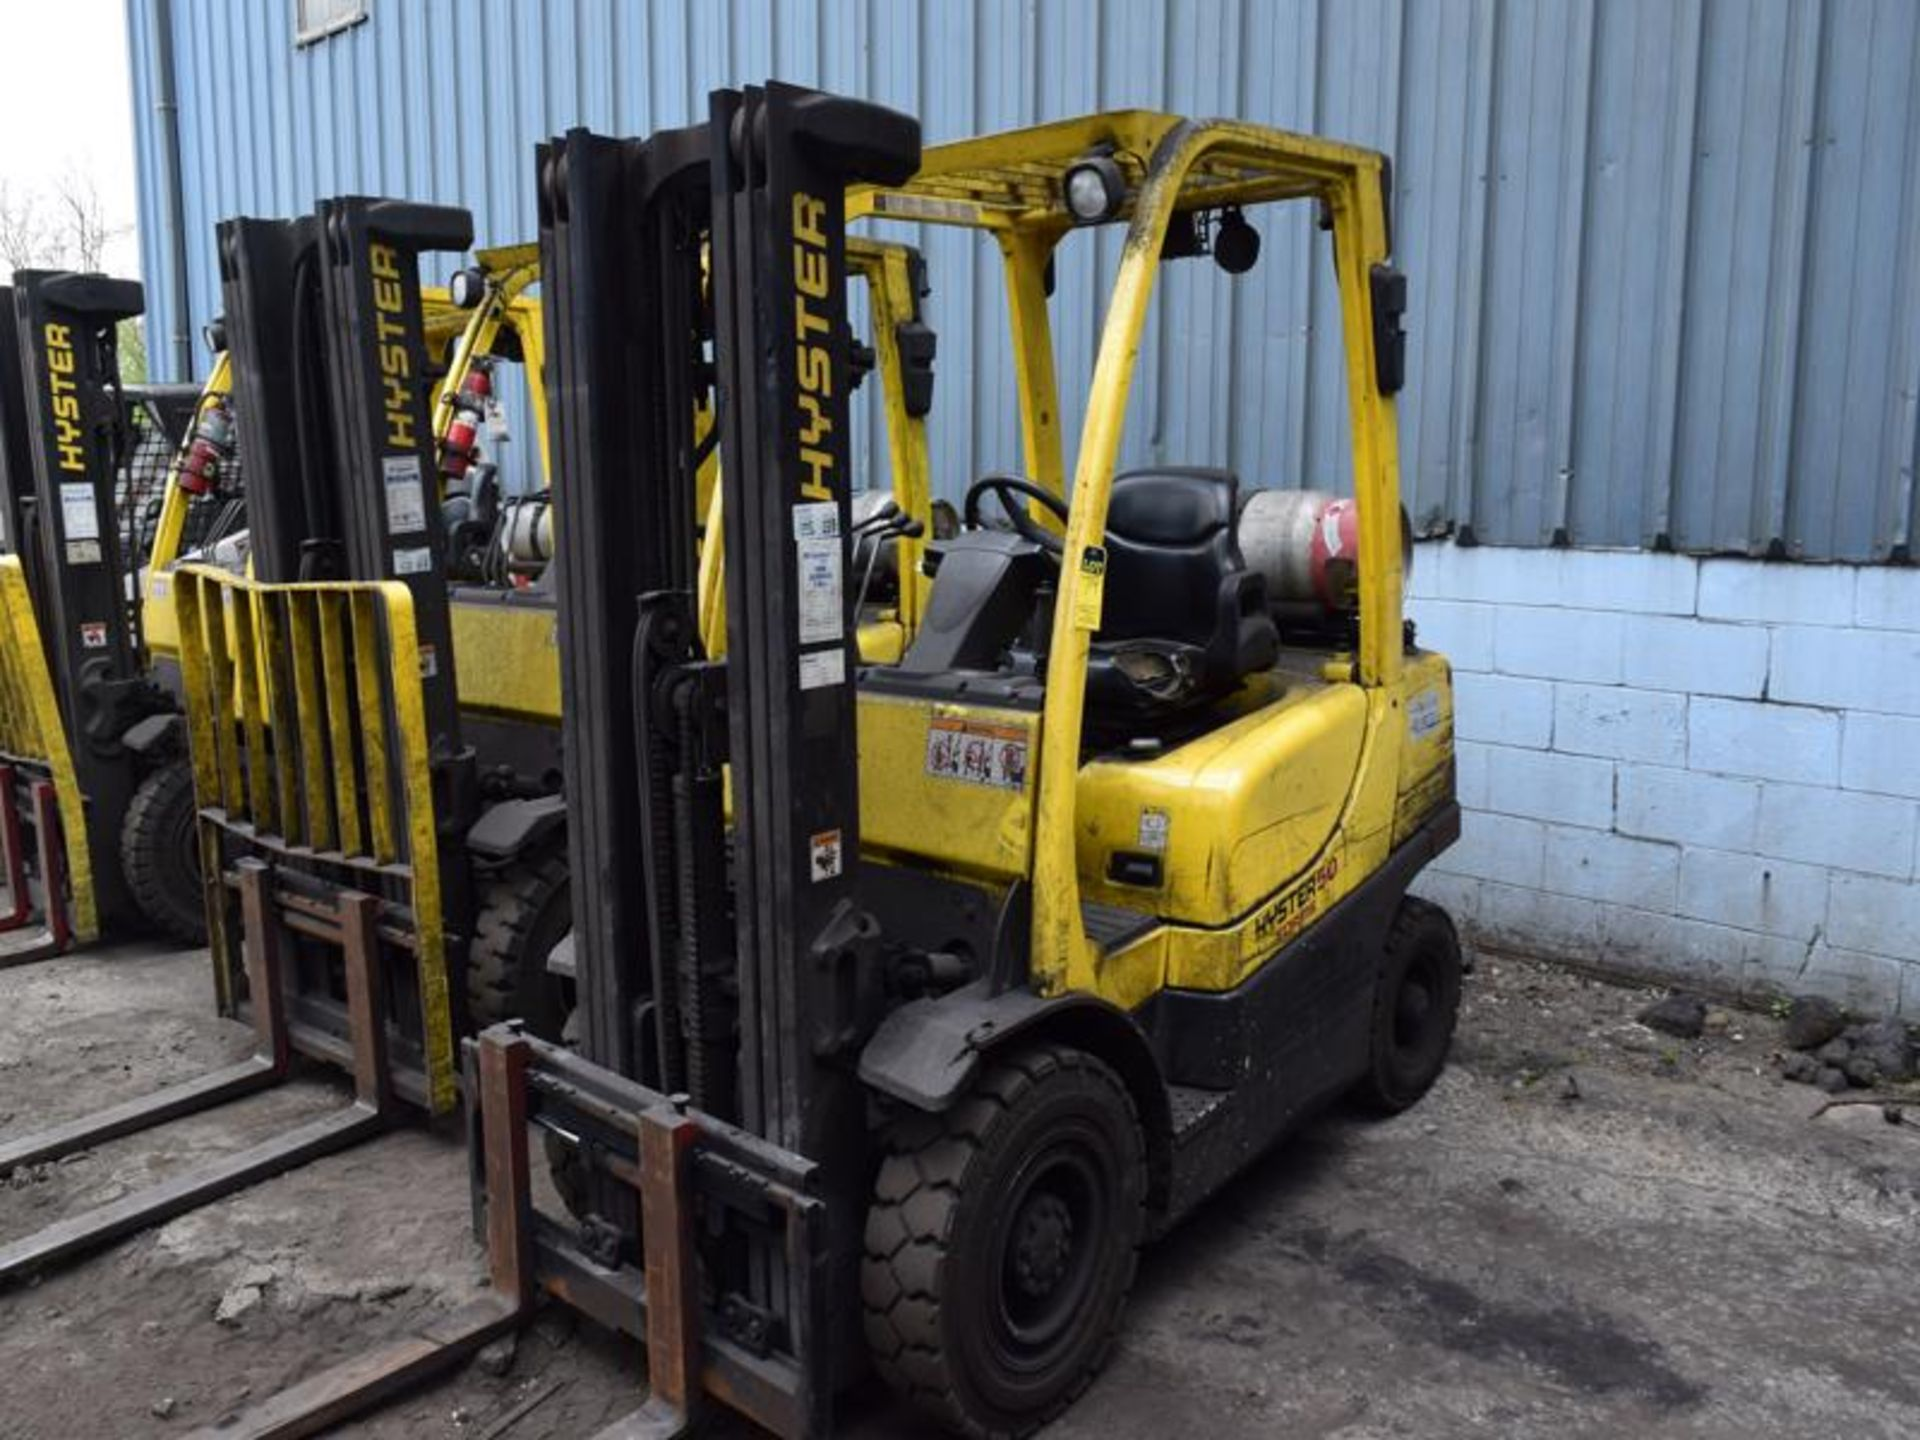 Lot 79 - Hyster model h50f1 5000# l/p powered fork lift truck s/n L177b21983F, 4536 hours, side shifter